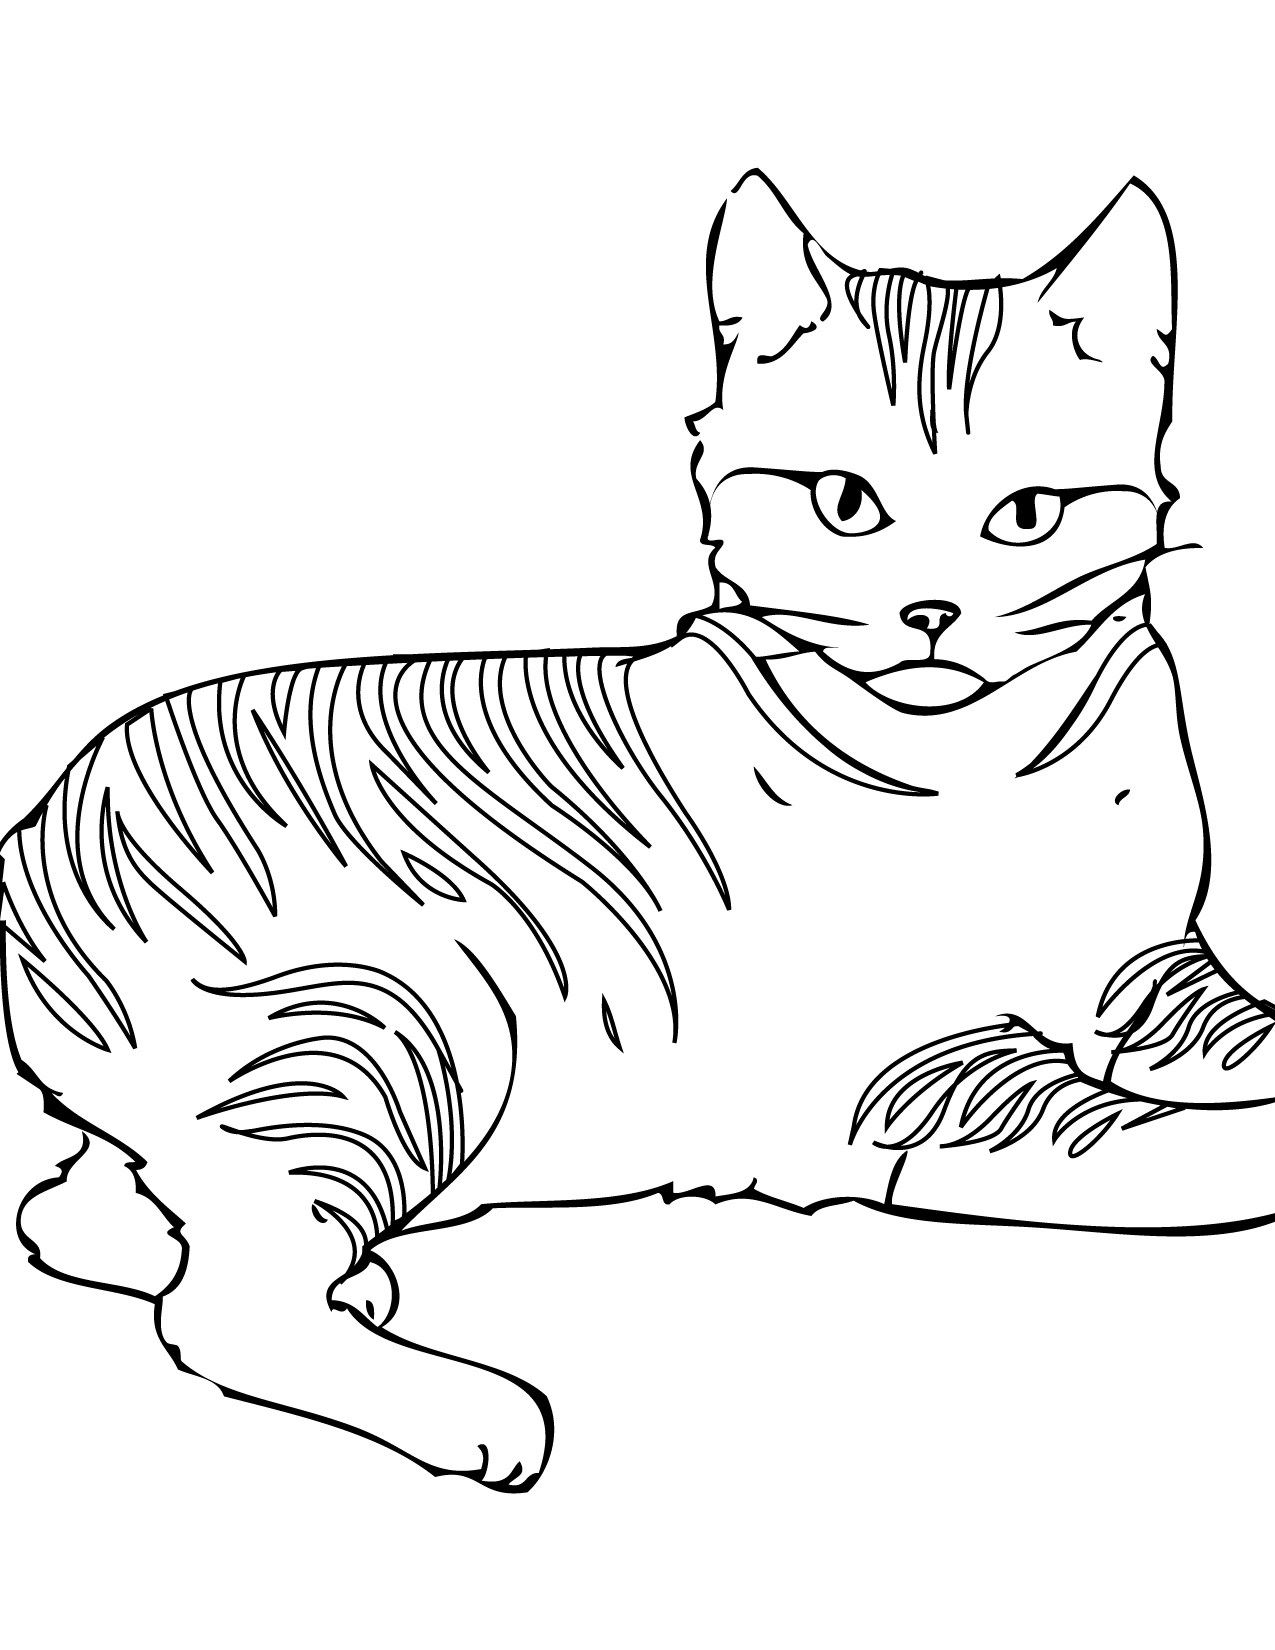 photograph relating to Cat Coloring Pages Free Printable identified as Free of charge Printable Cat Coloring Web pages For Small children